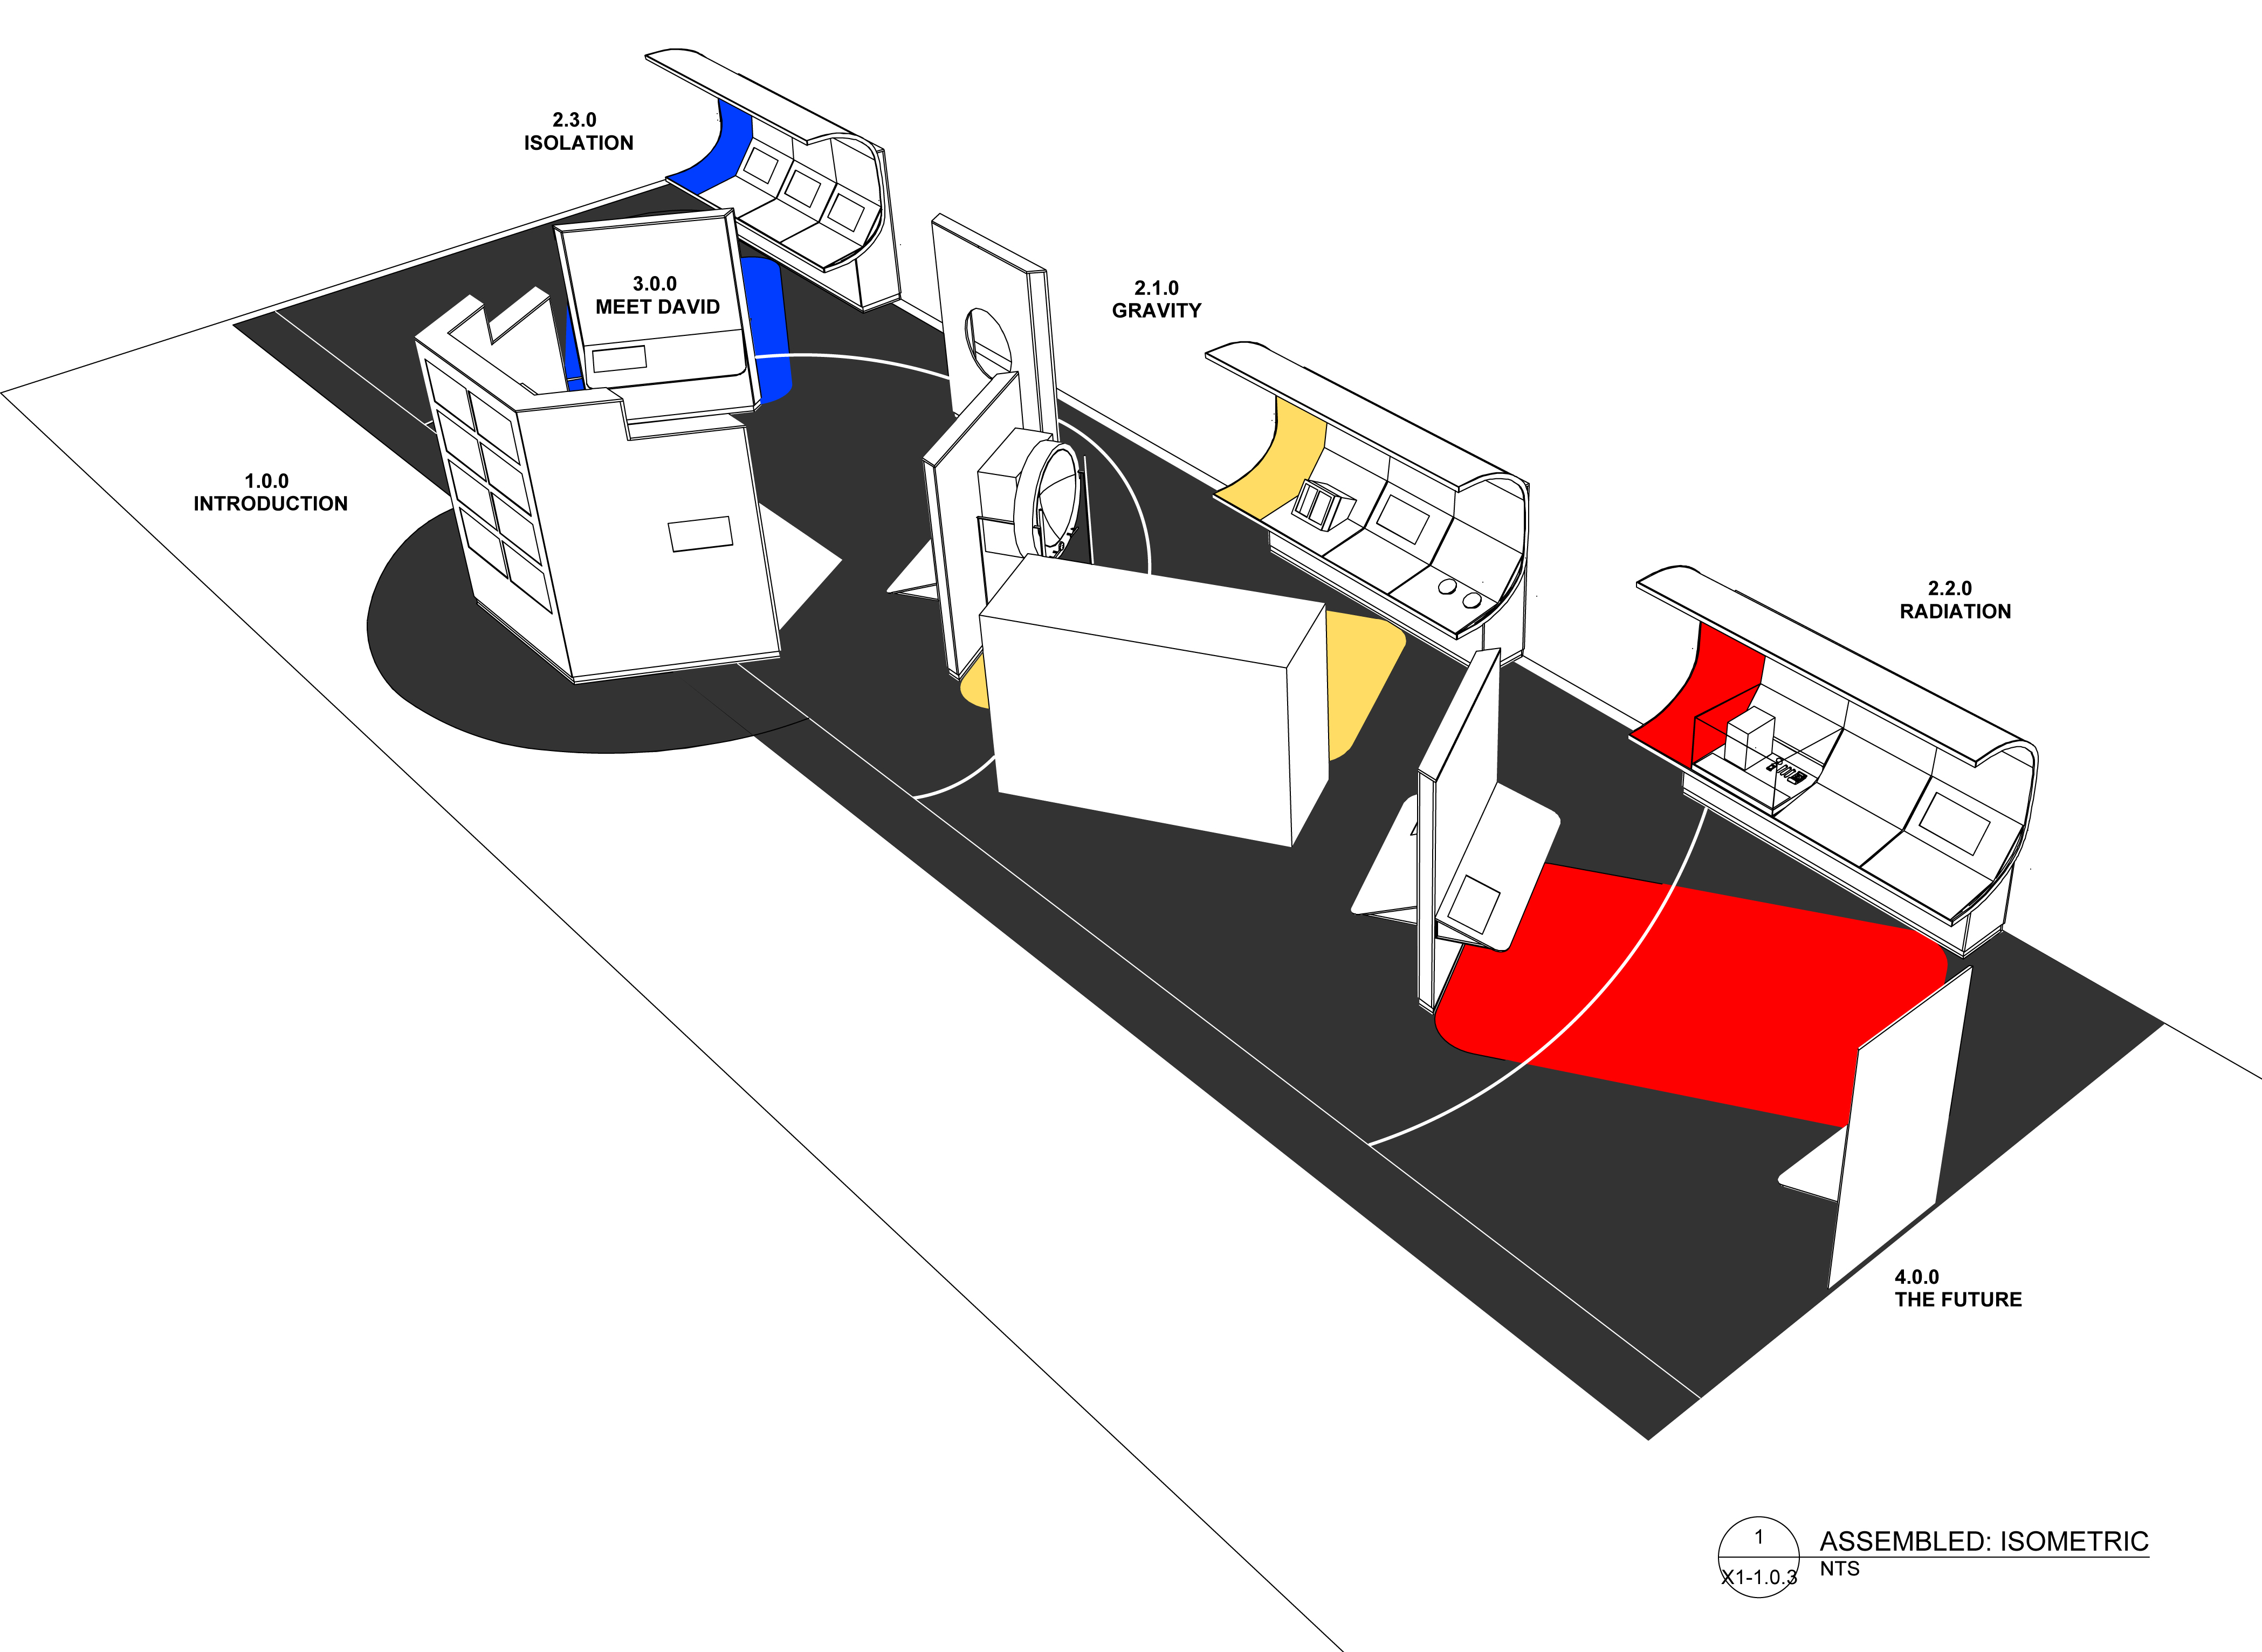 Conceptual plans for the Health in Space exhibition showing its three main sections.